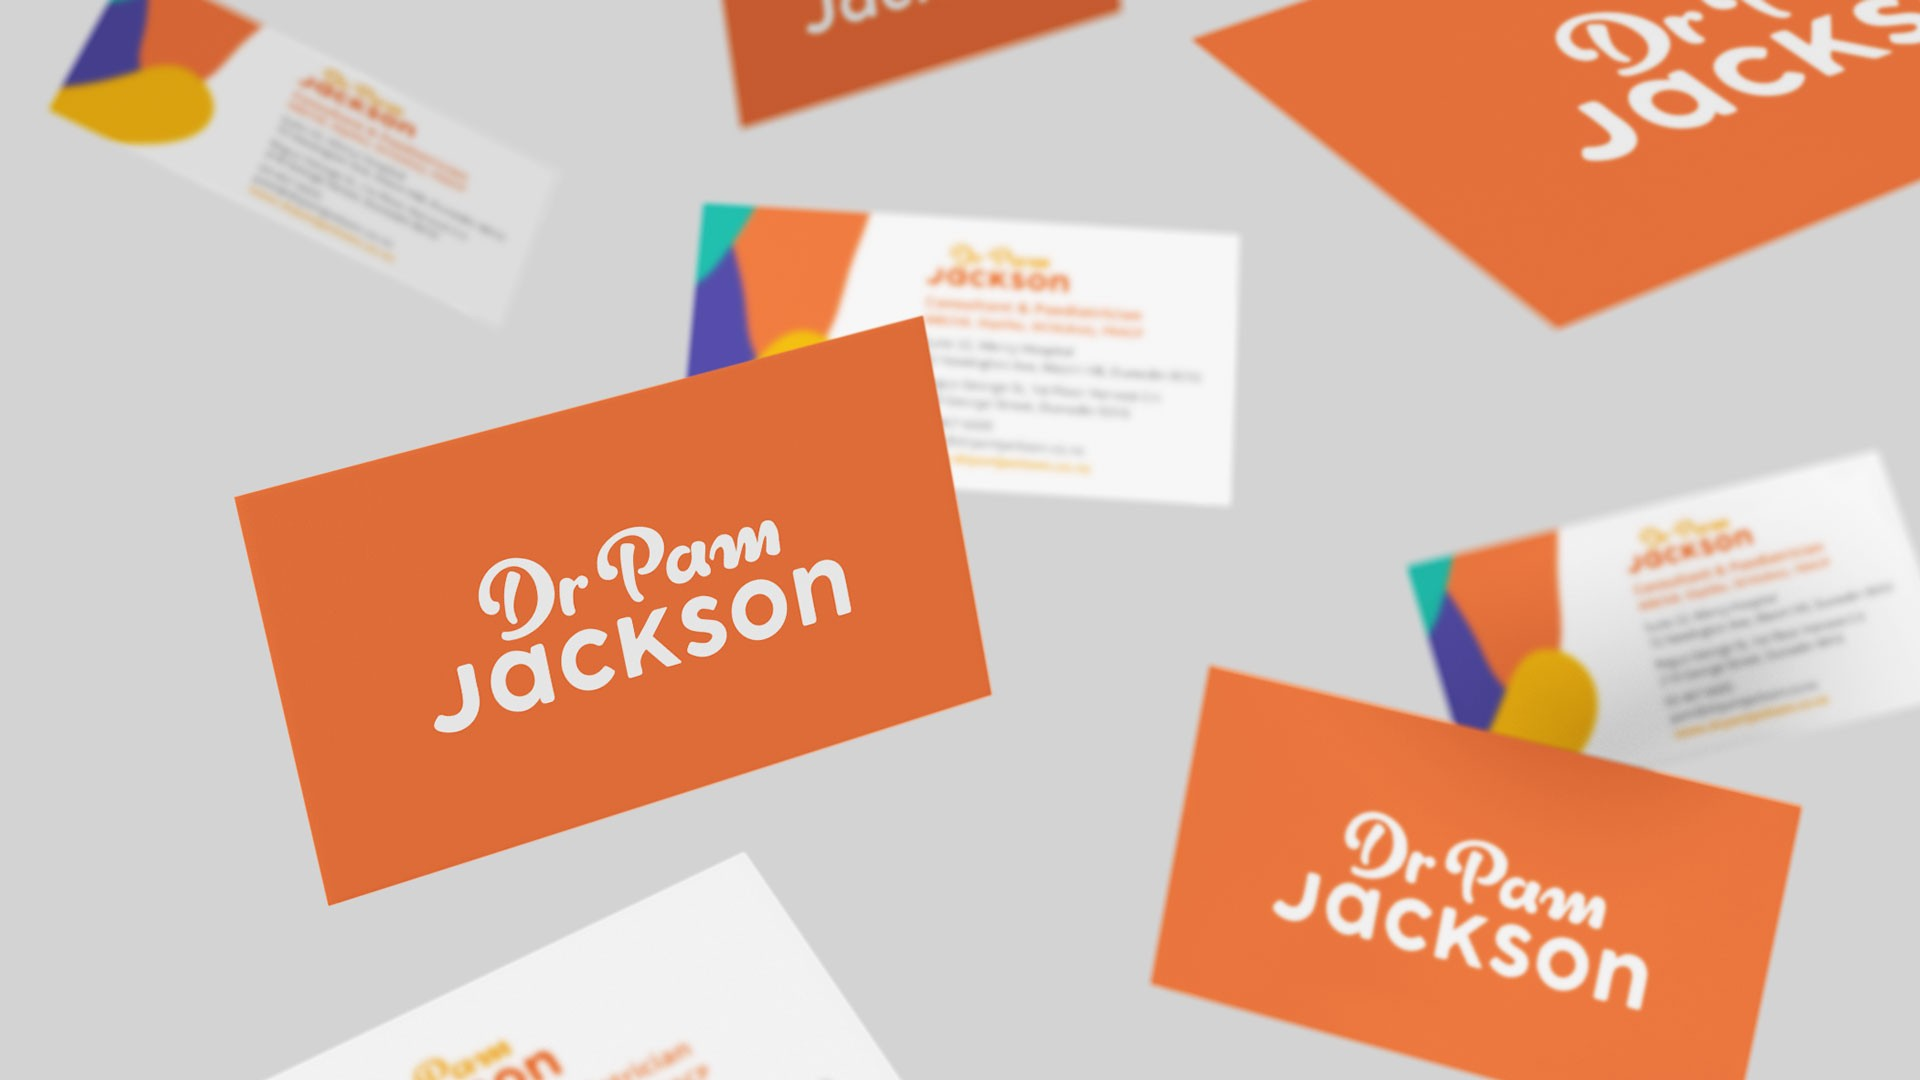 Dr Pam Jackson 01 Business Cards Mockup